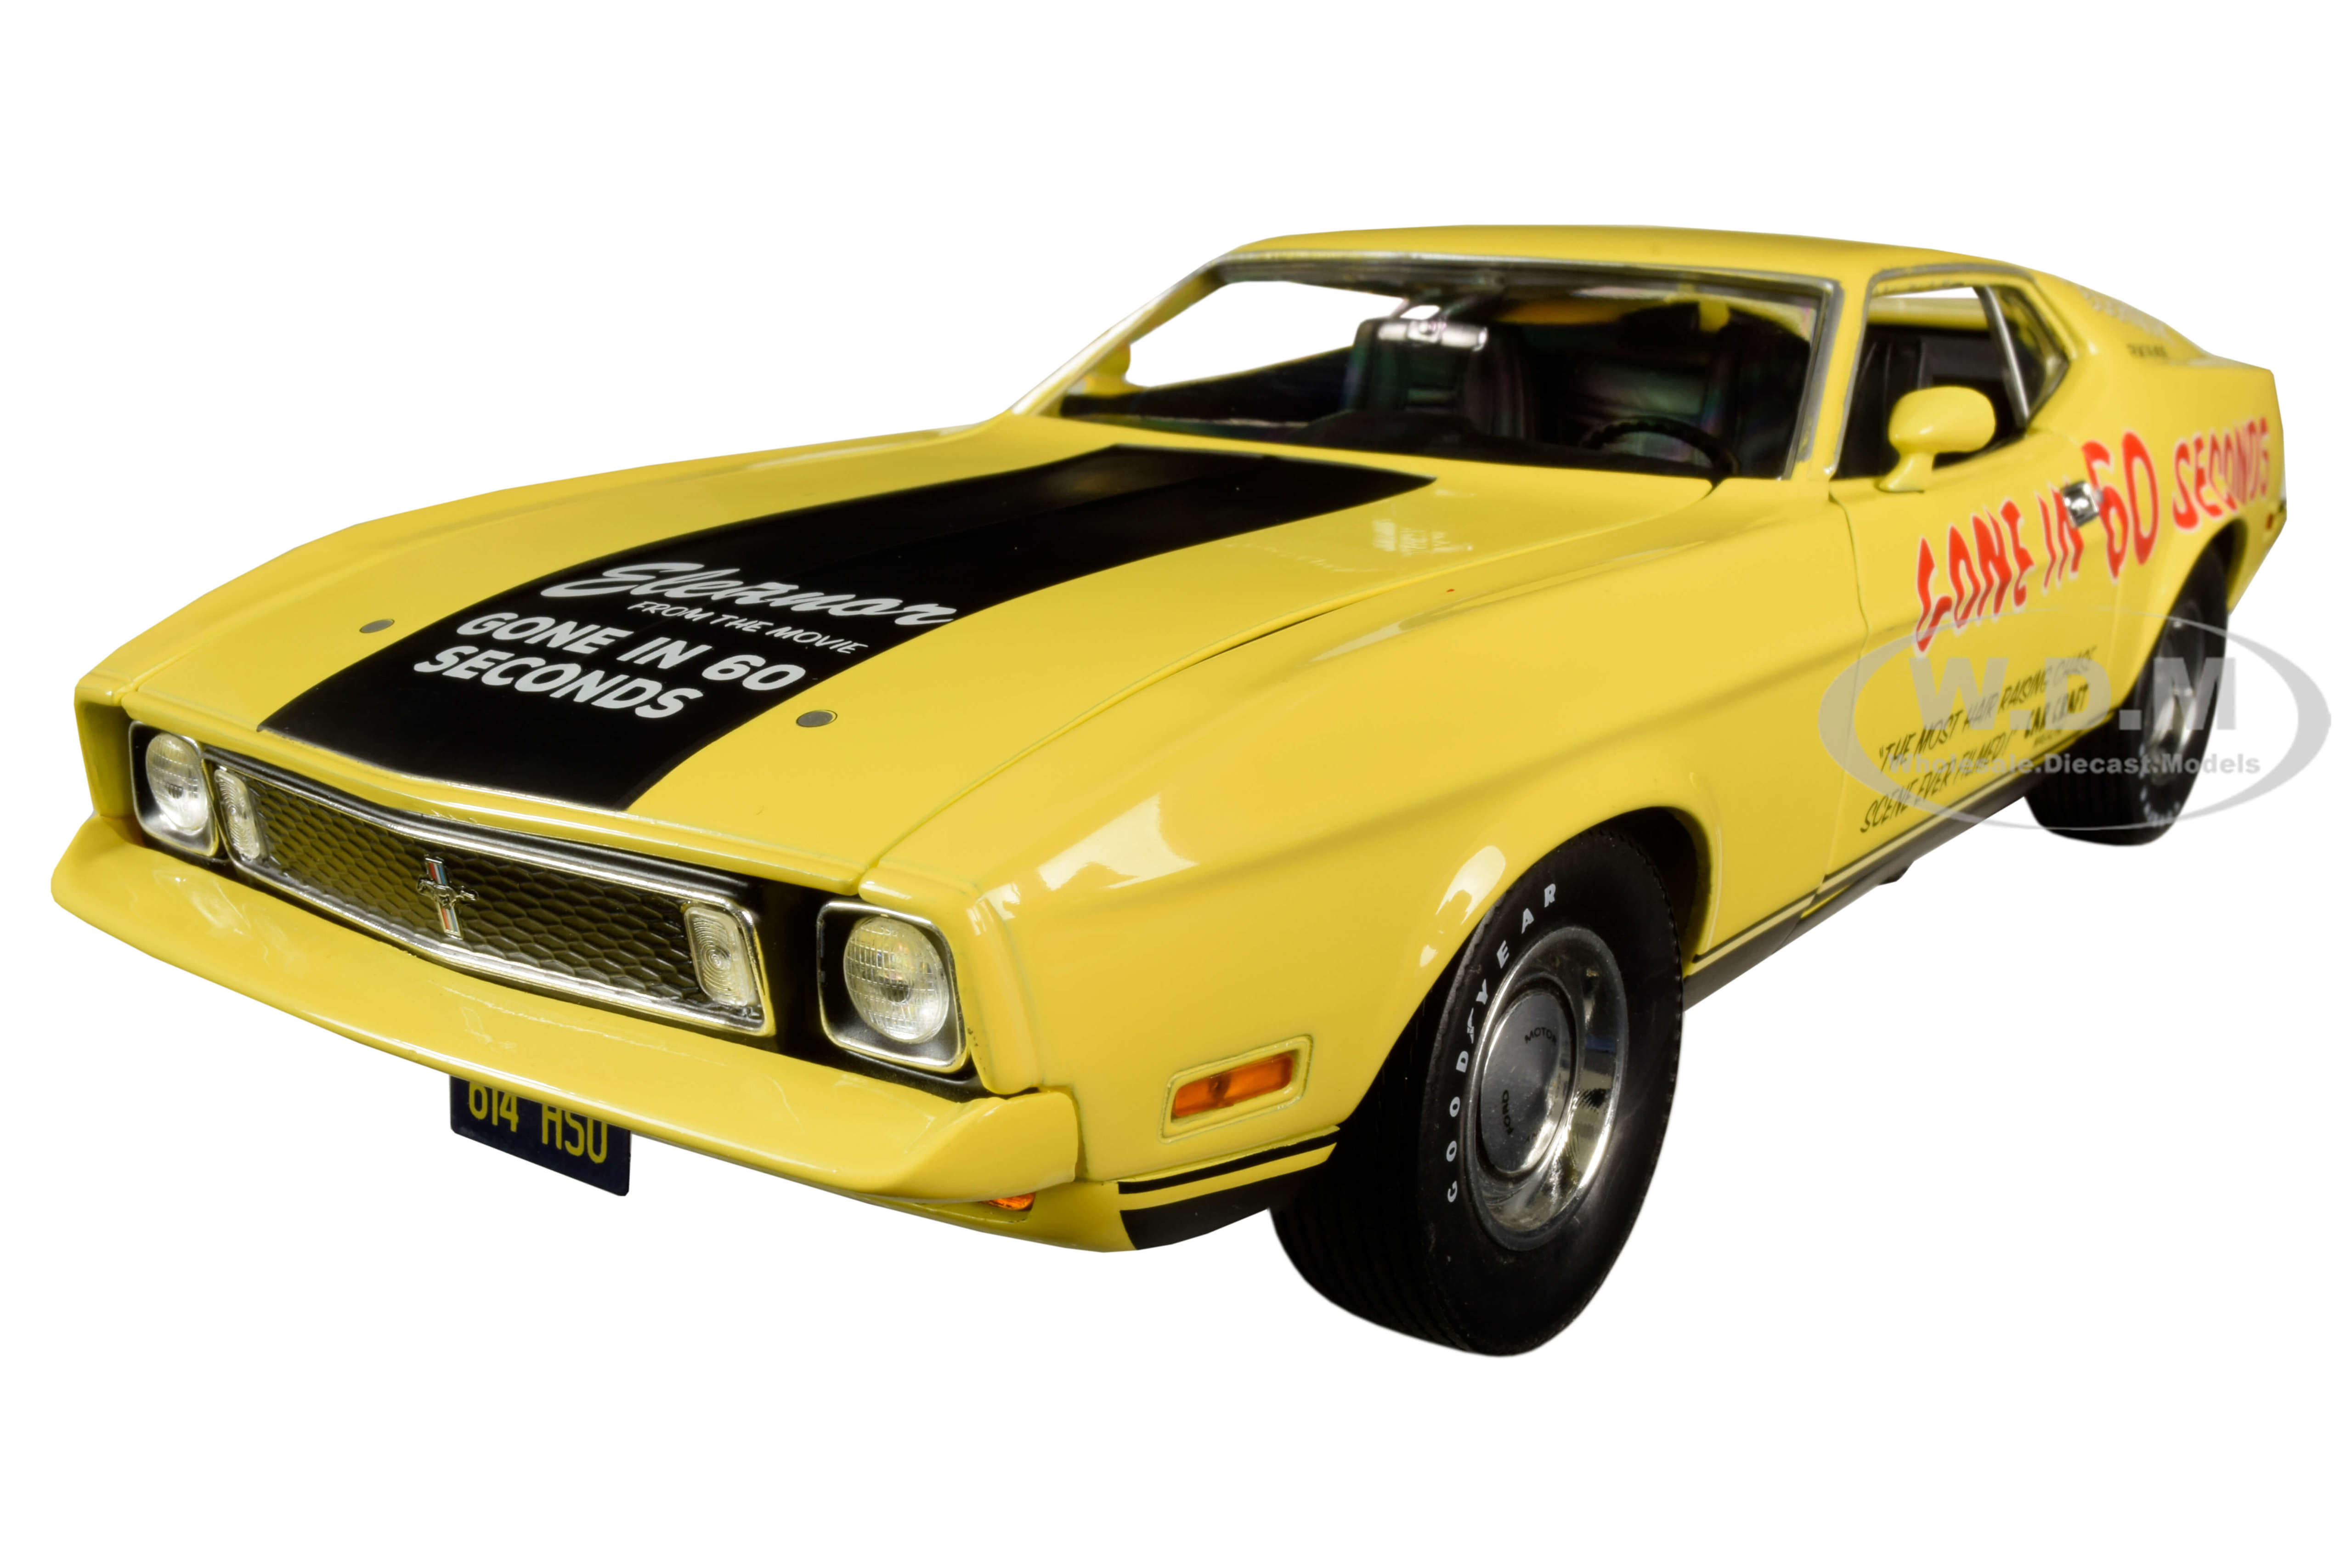 1973 Ford Mustang Mach 1 Custom Movie Star